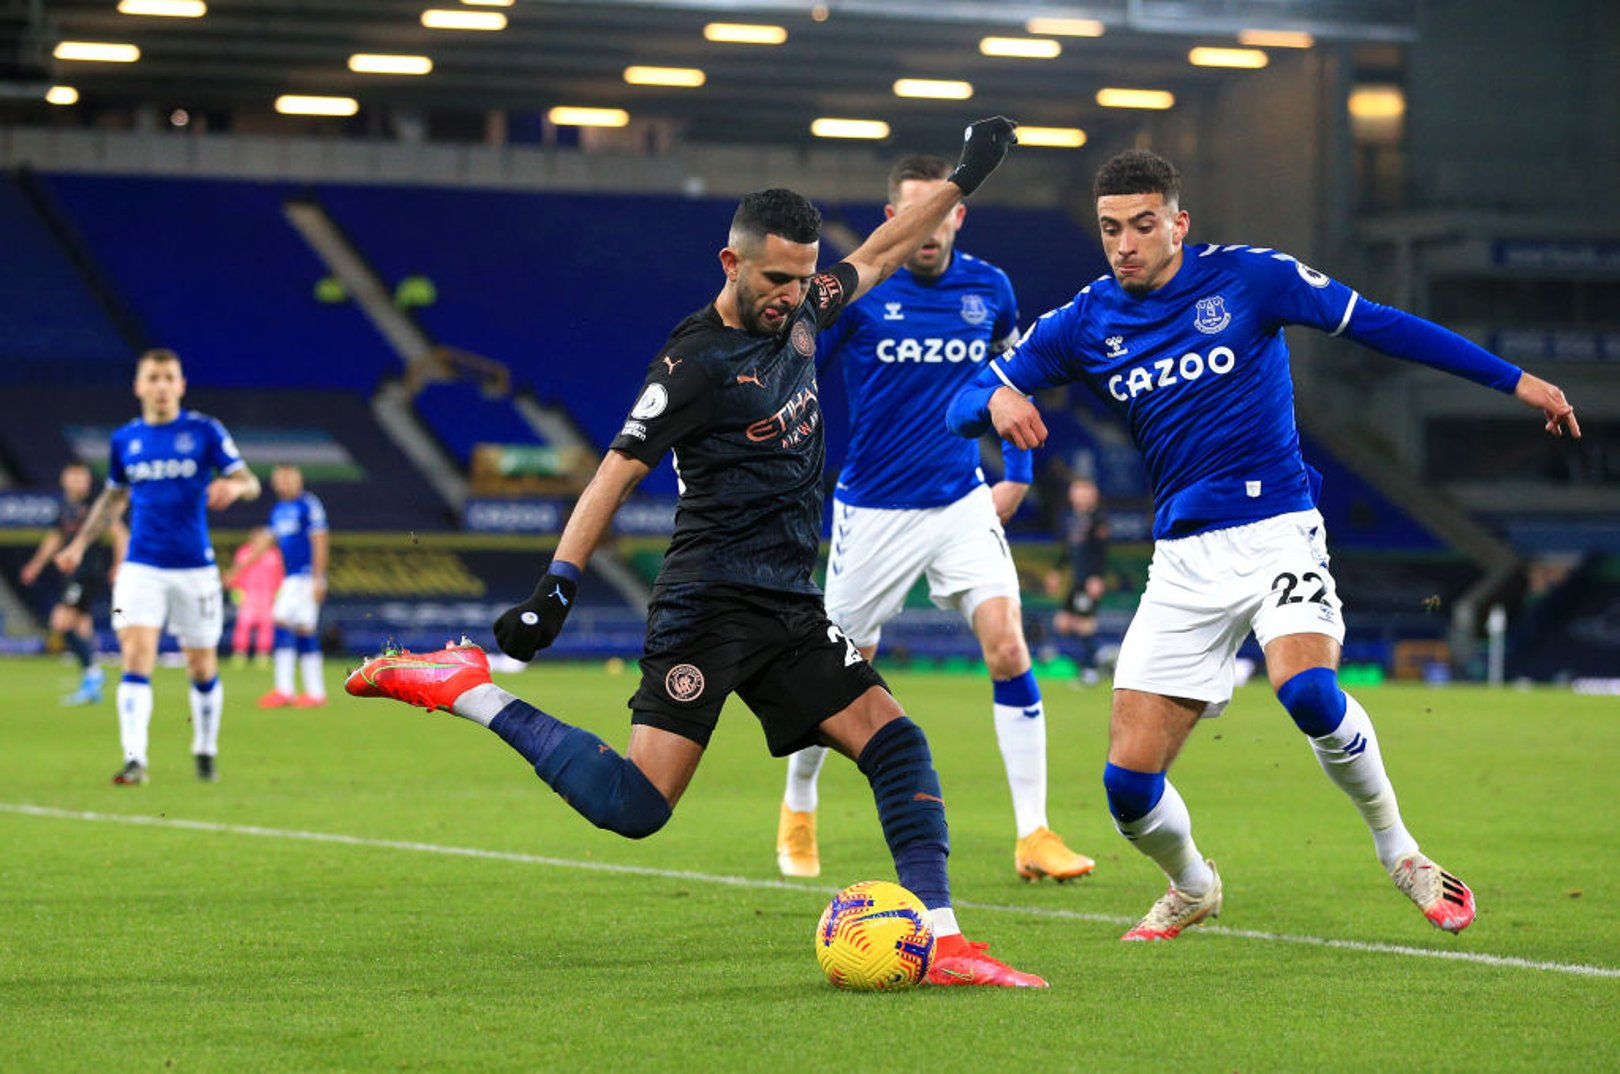 Andy Morrison: One v one Mahrez is the best at City